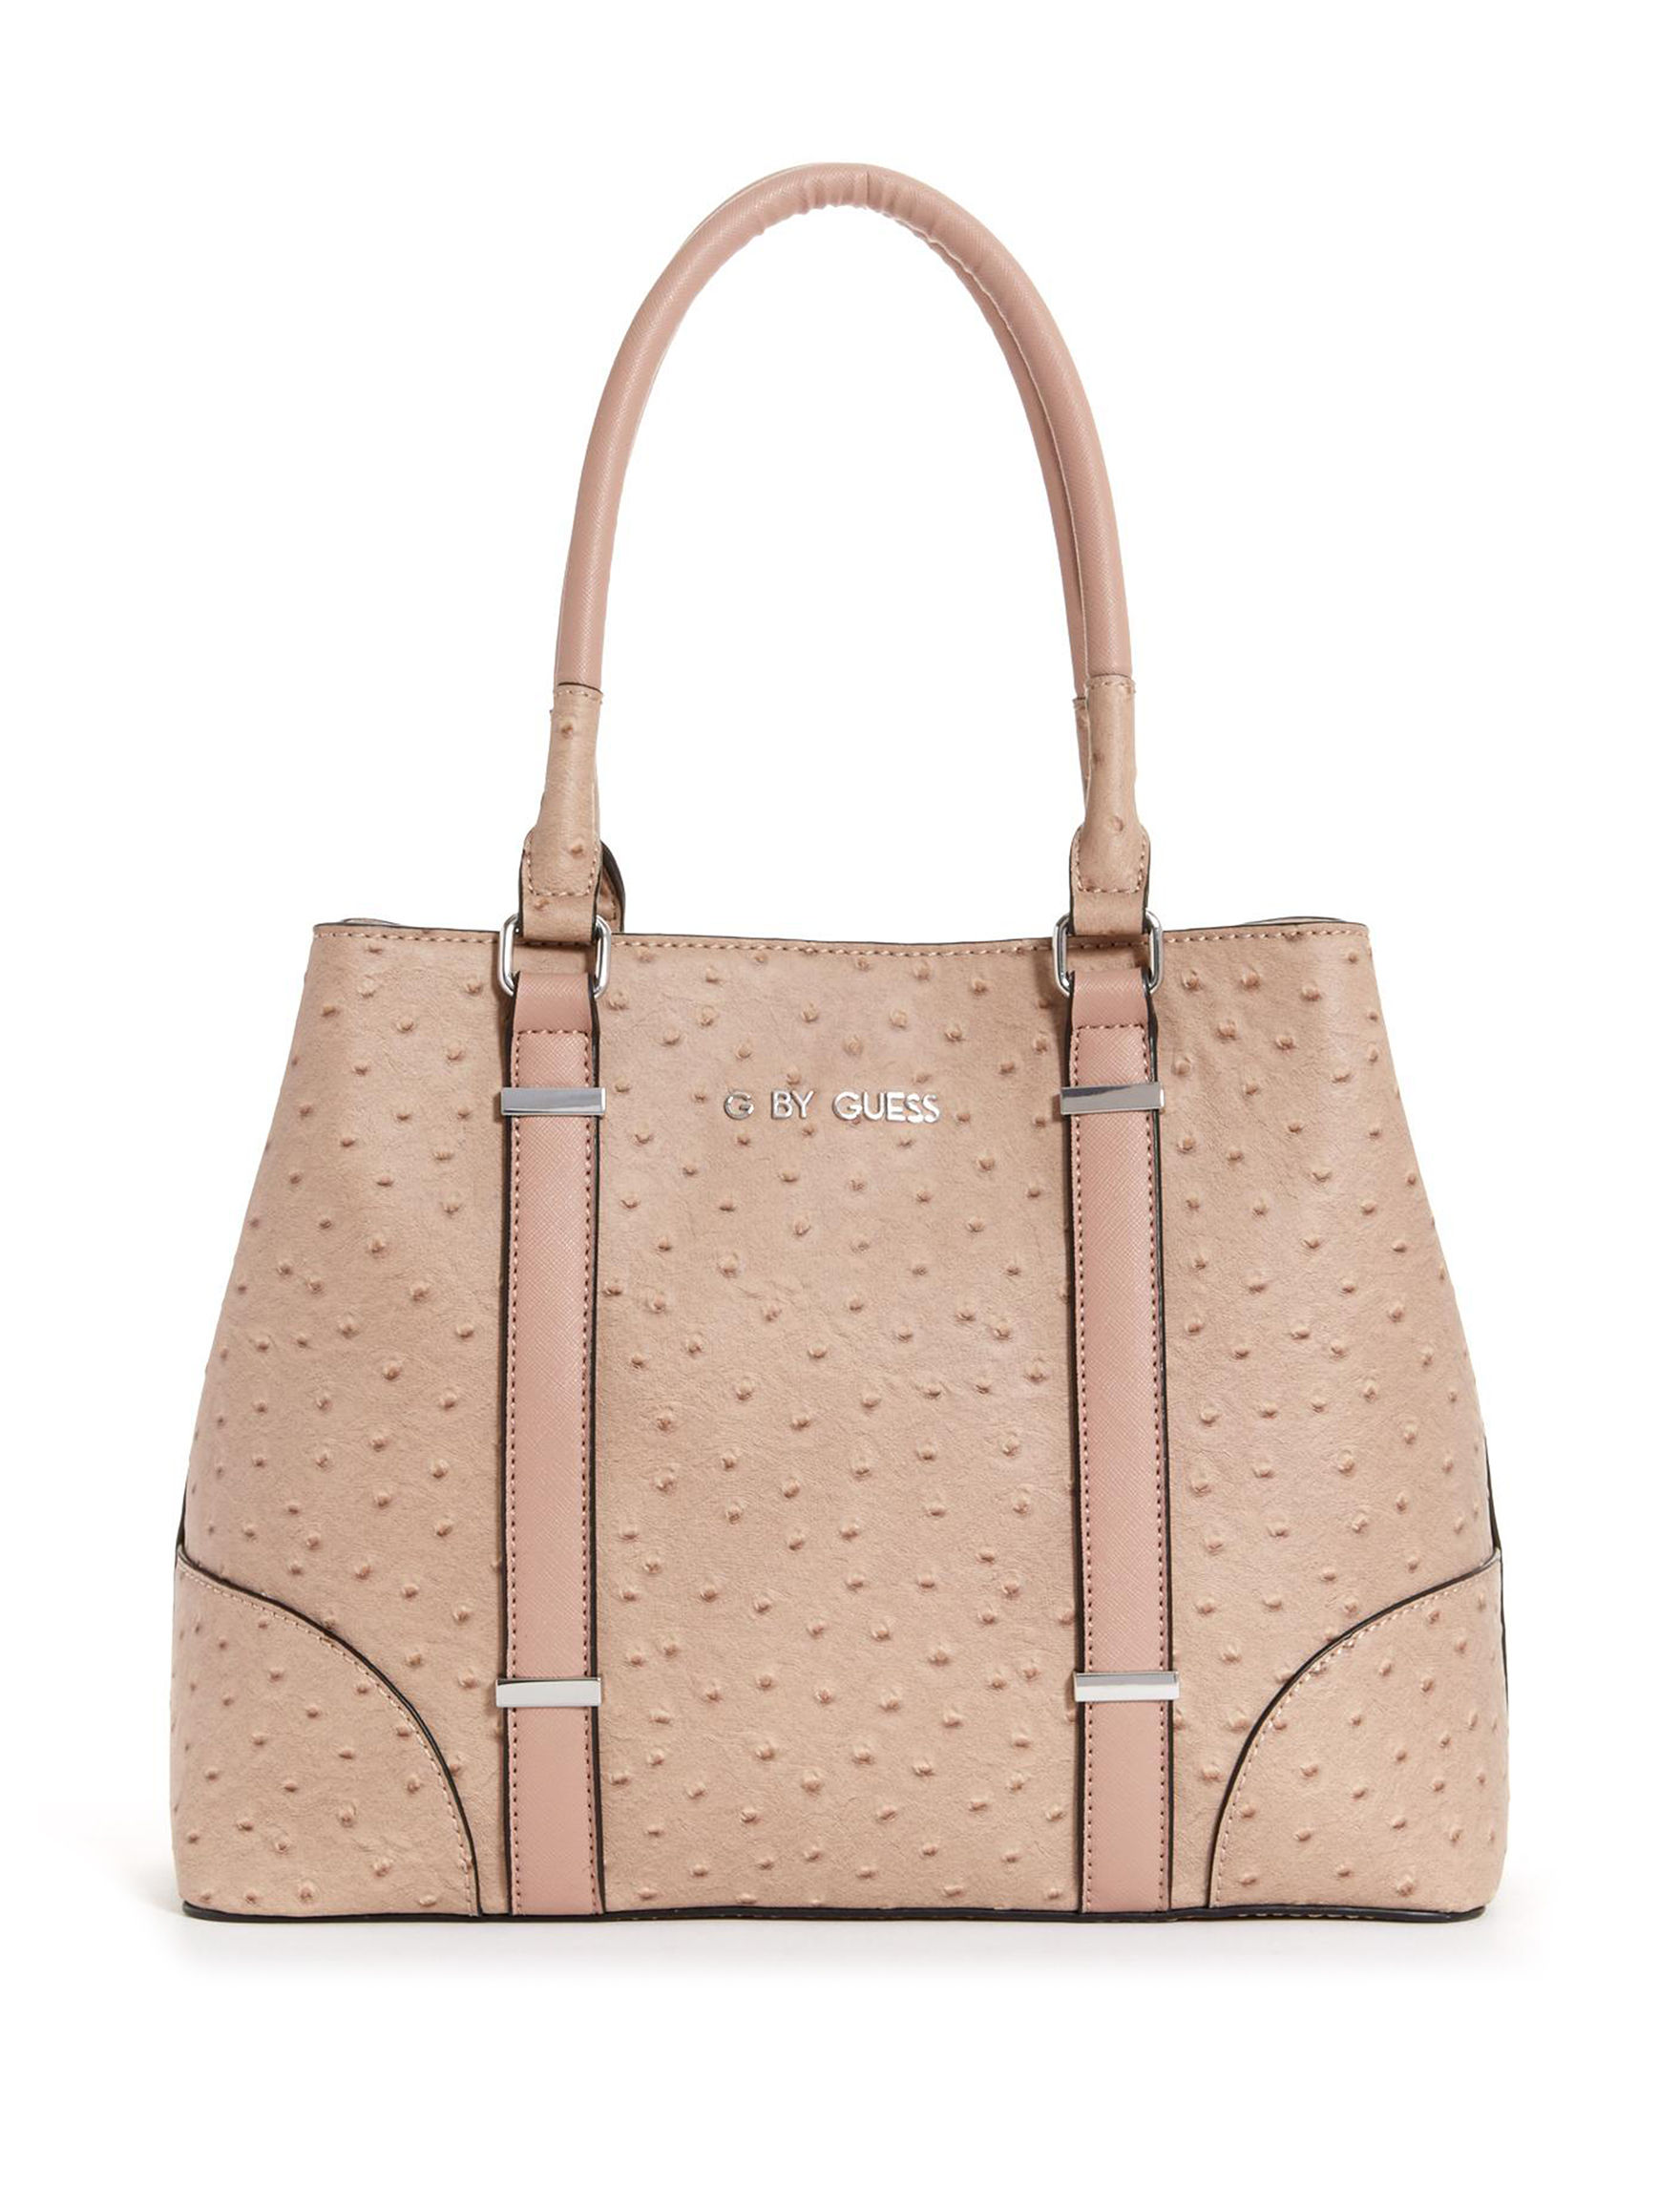 G by Guess Pink